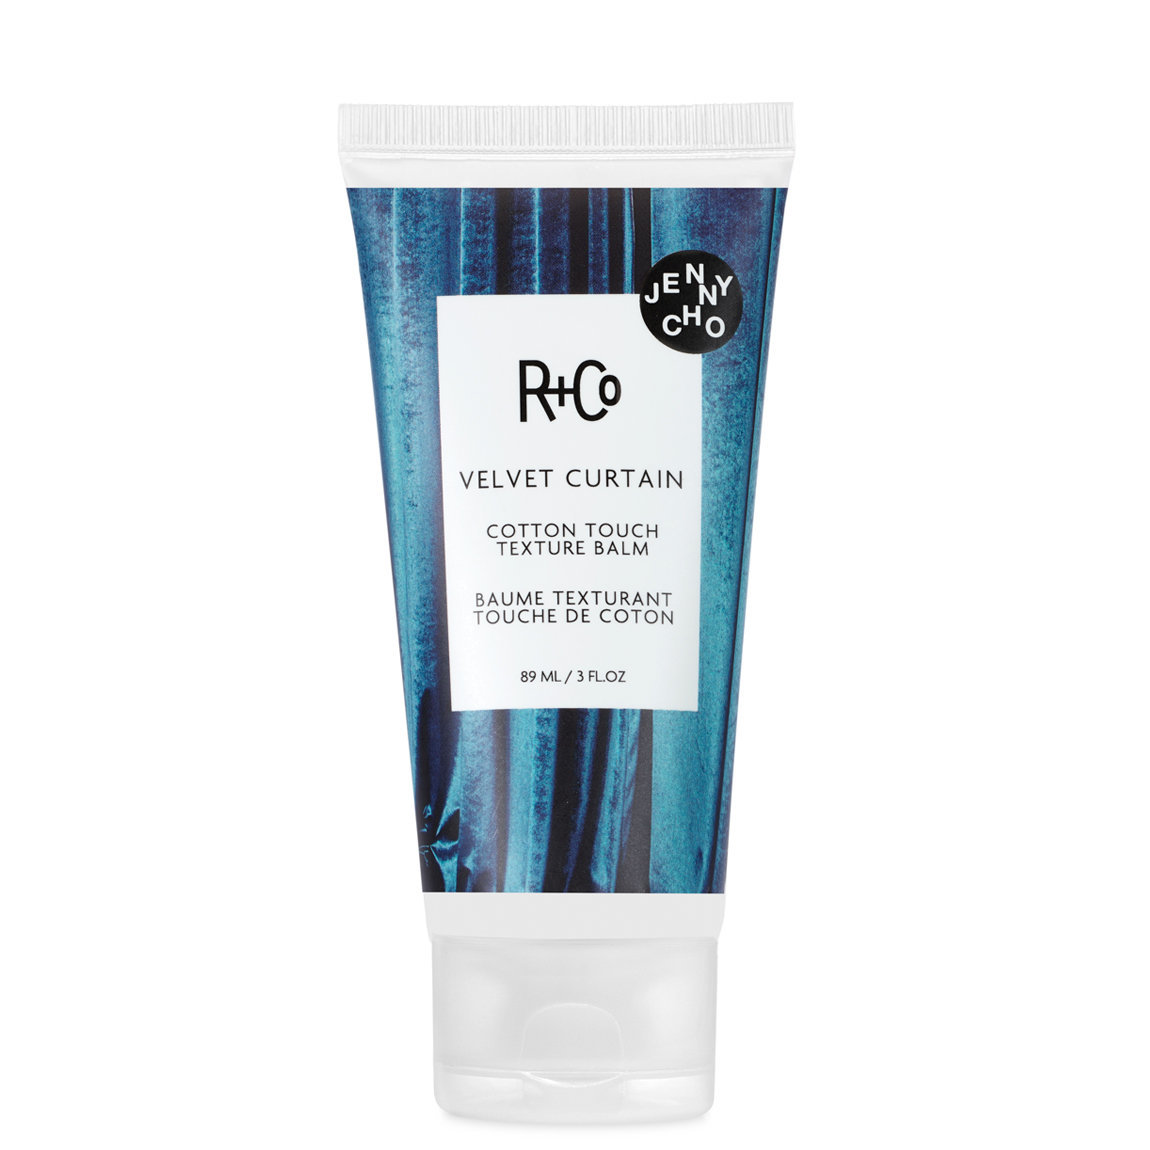 R+Co Velvet Curtain Cotton Touch Texture Balm alternative view 1 - product swatch.